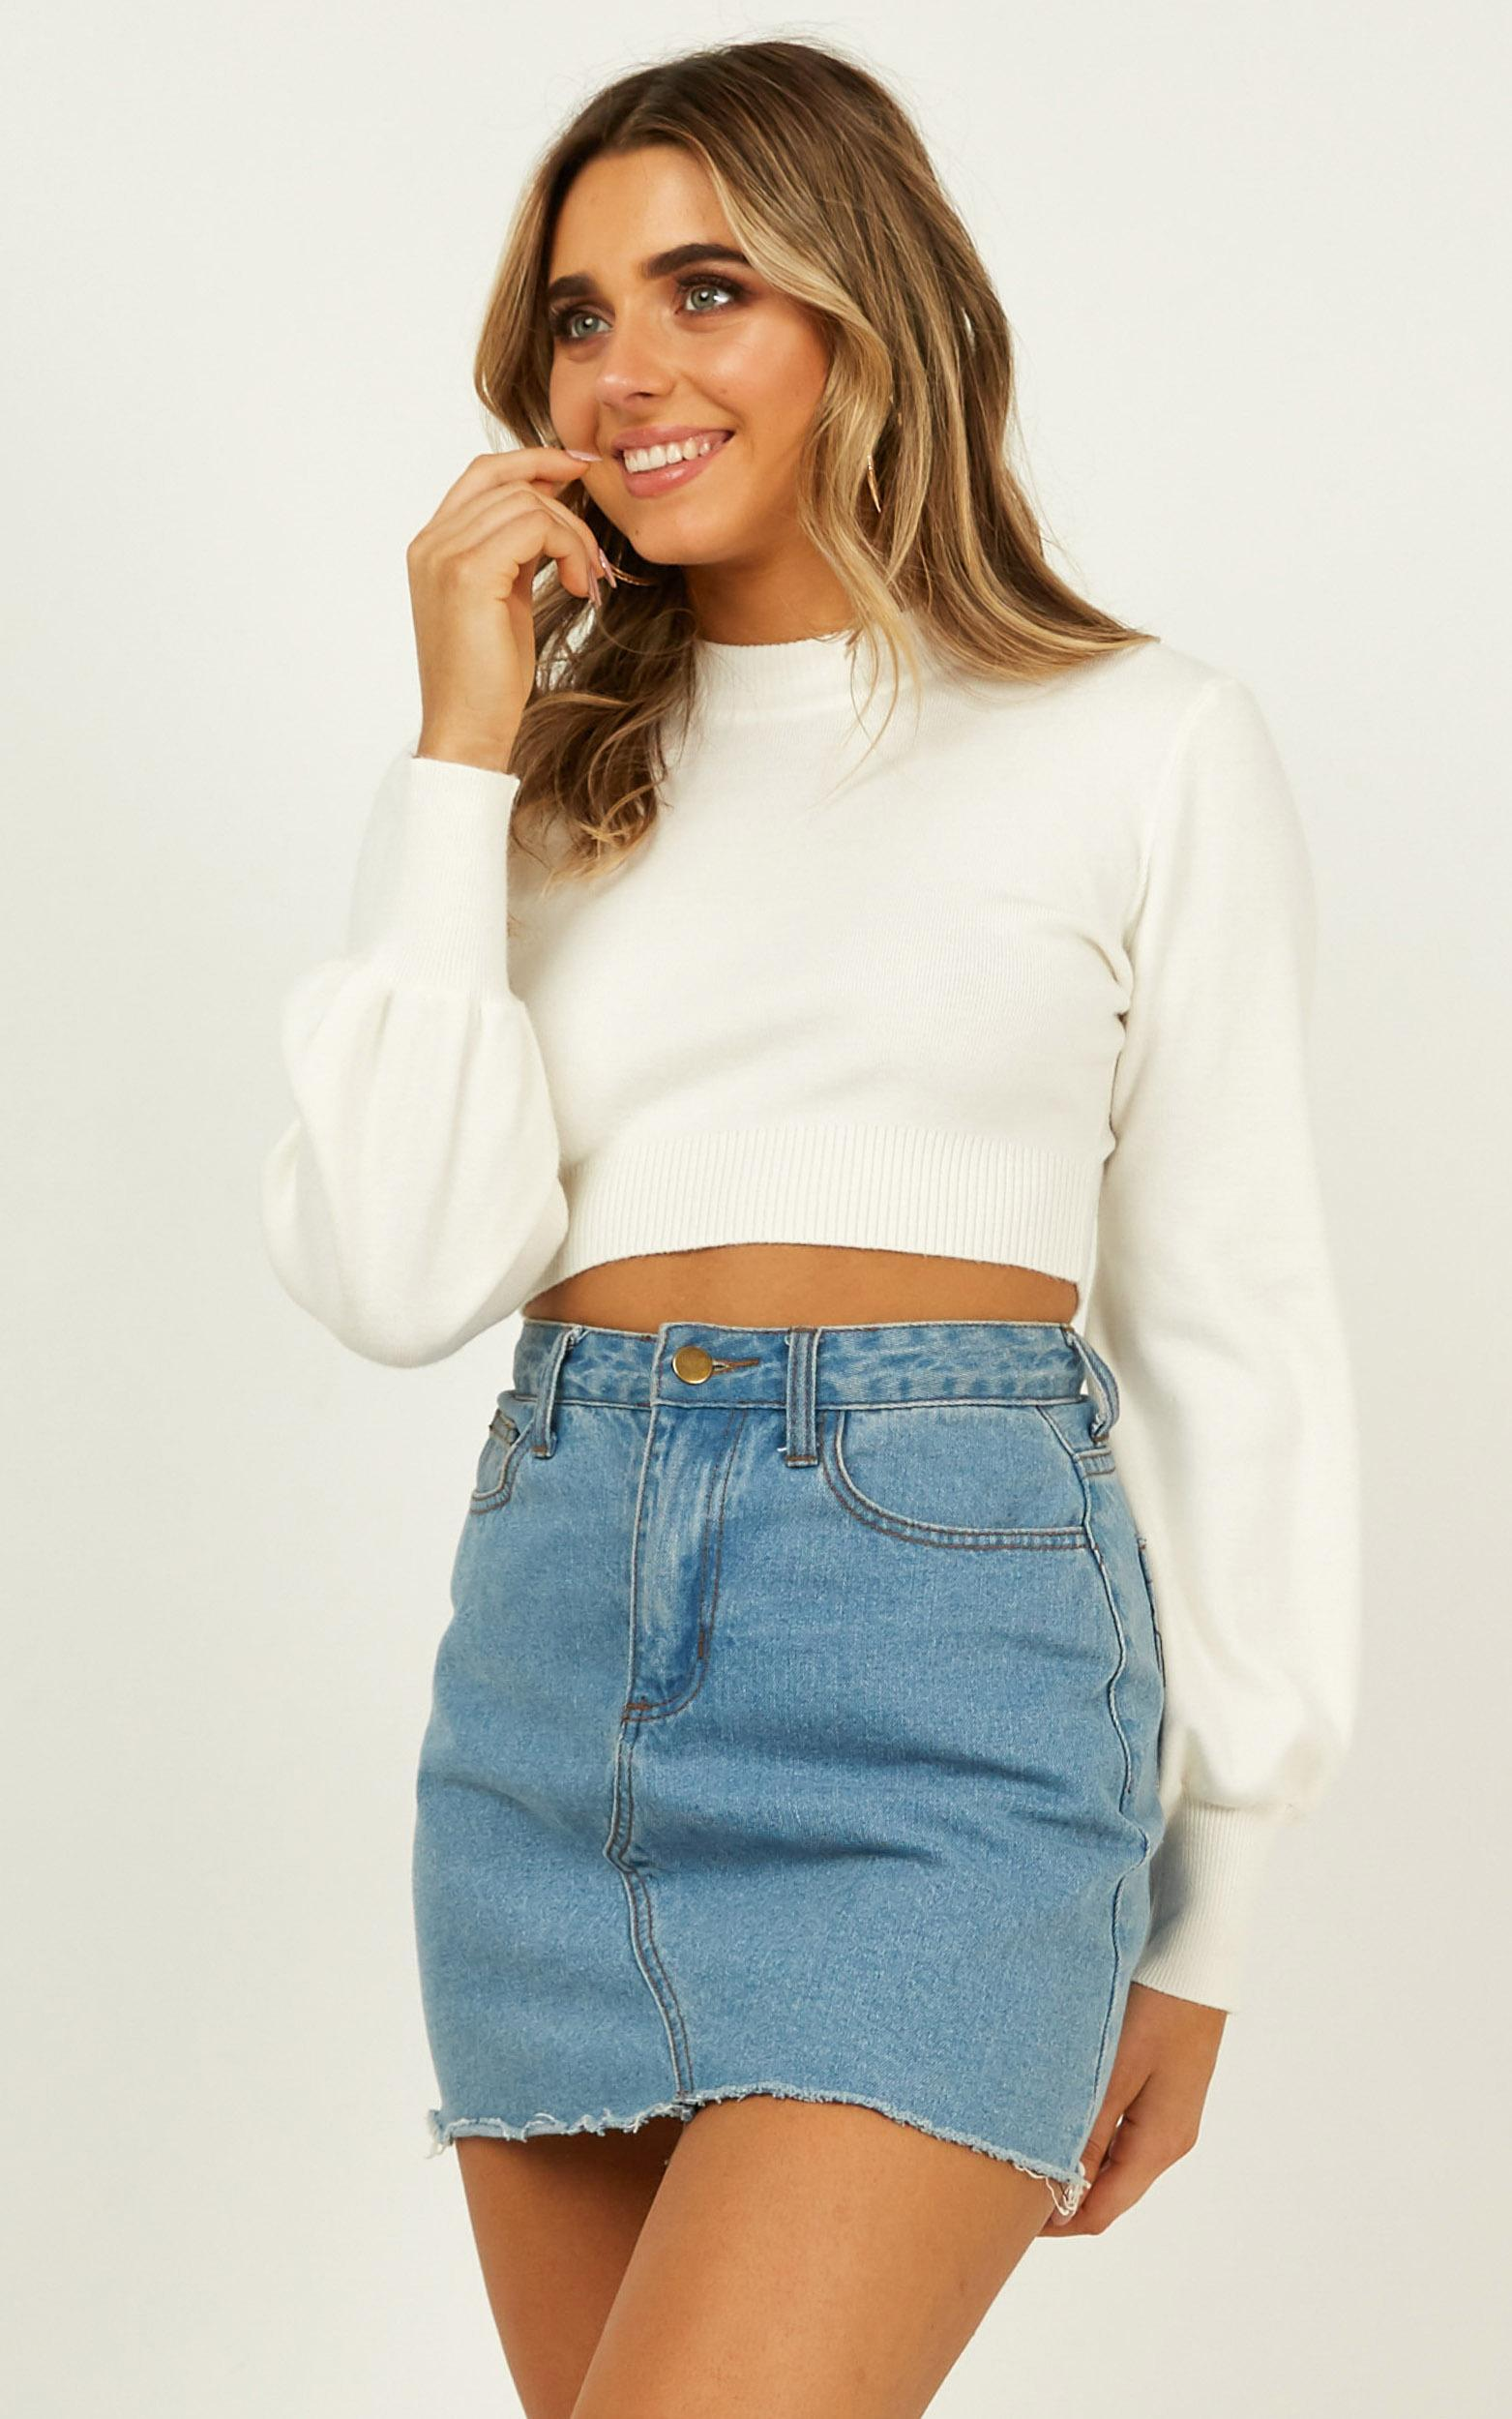 Jeni Cropped Knit Jumper In White - 12 (L), White, hi-res image number null